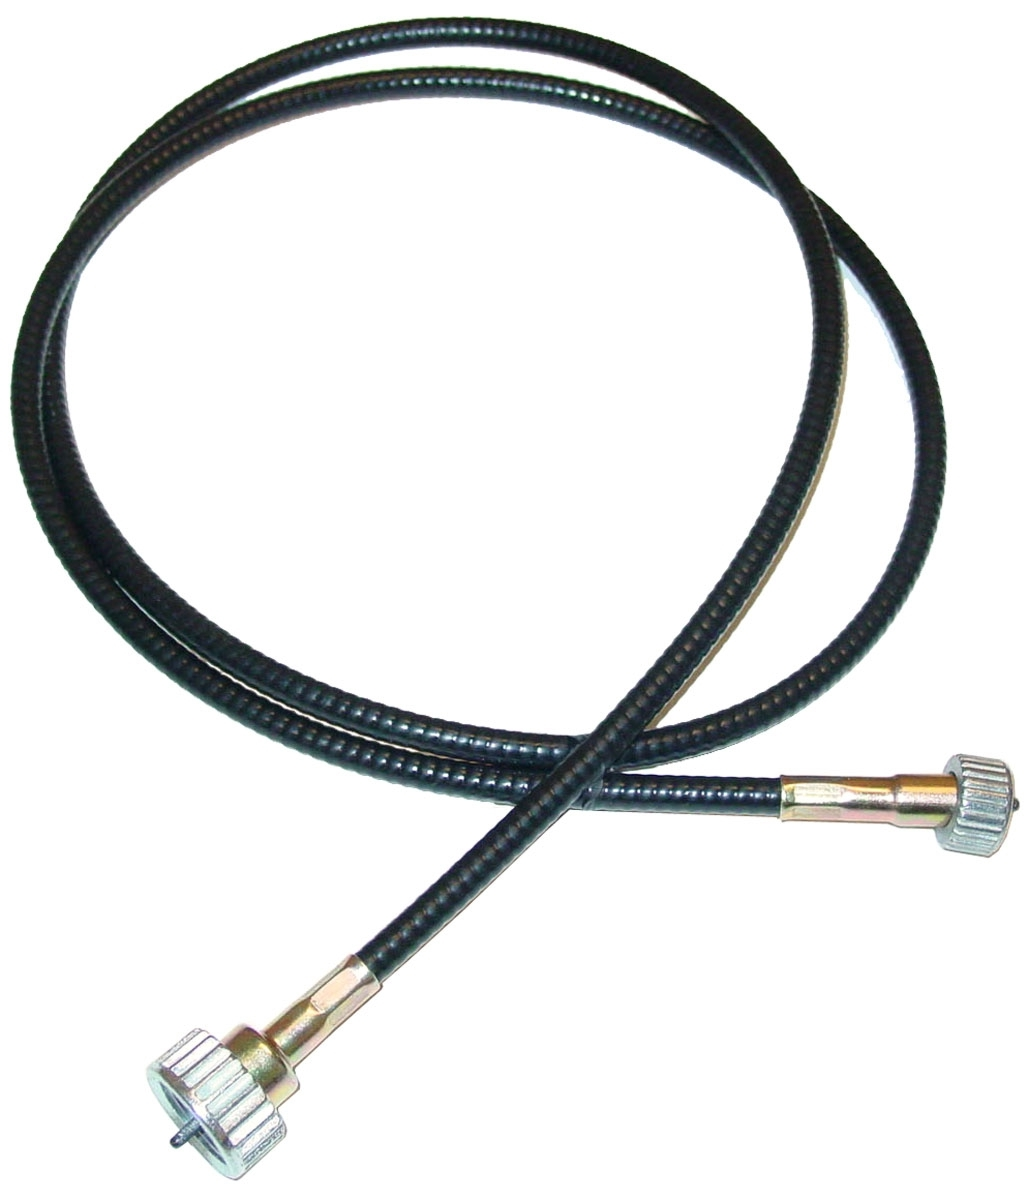 TACHOMETER/SPEEDOMETER CABLE